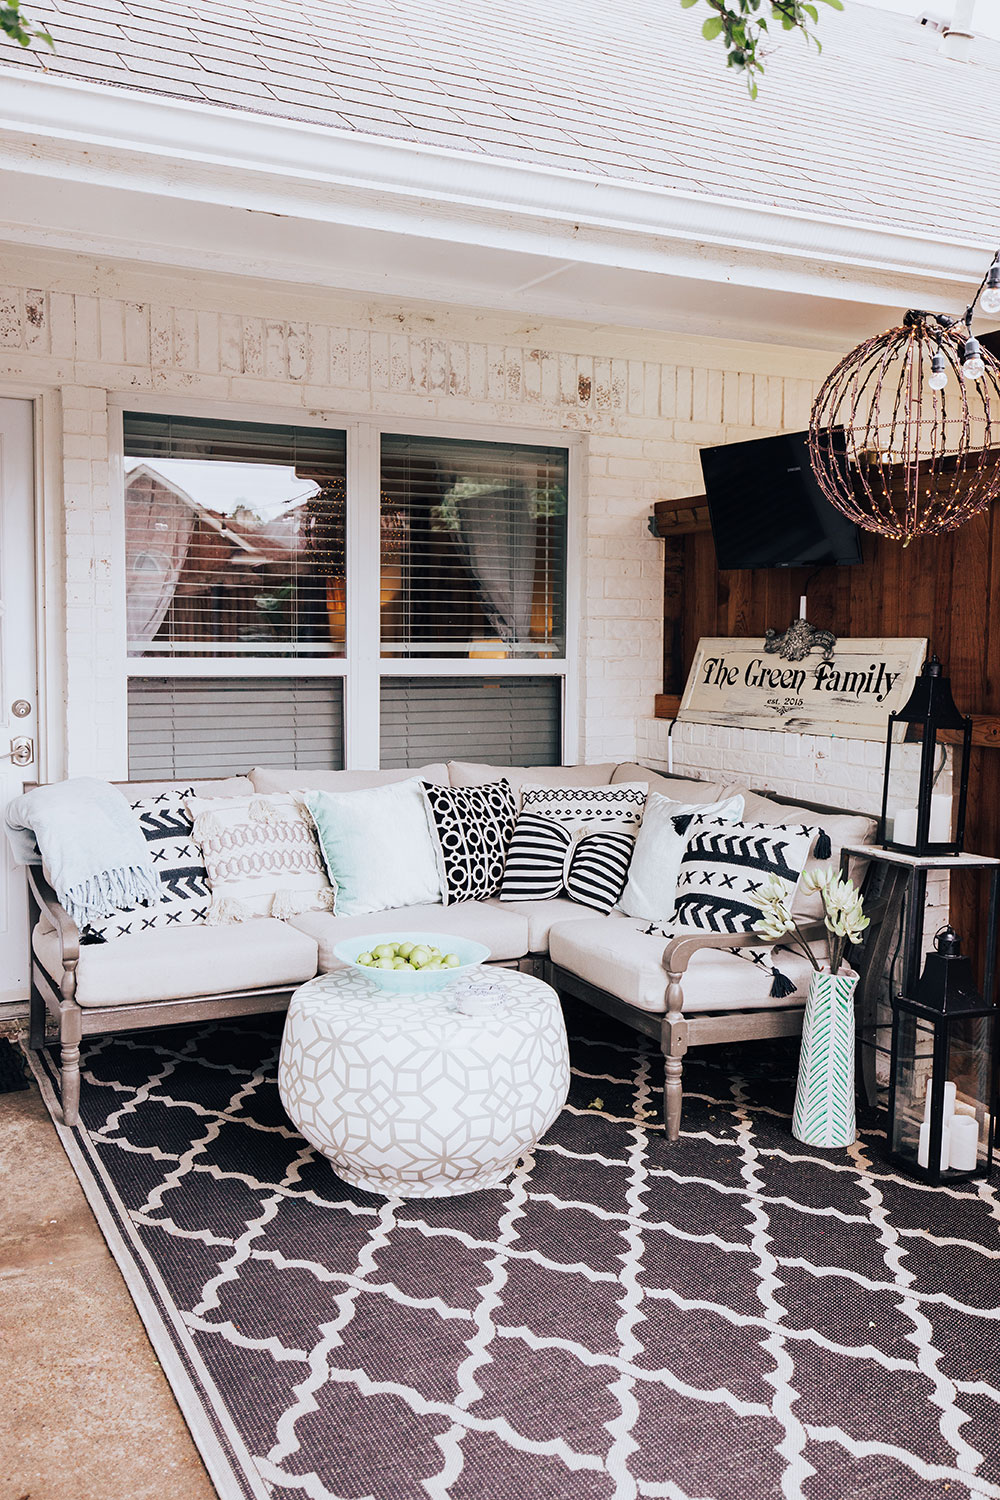 23+ Outdoor Back Porch Ideas Images